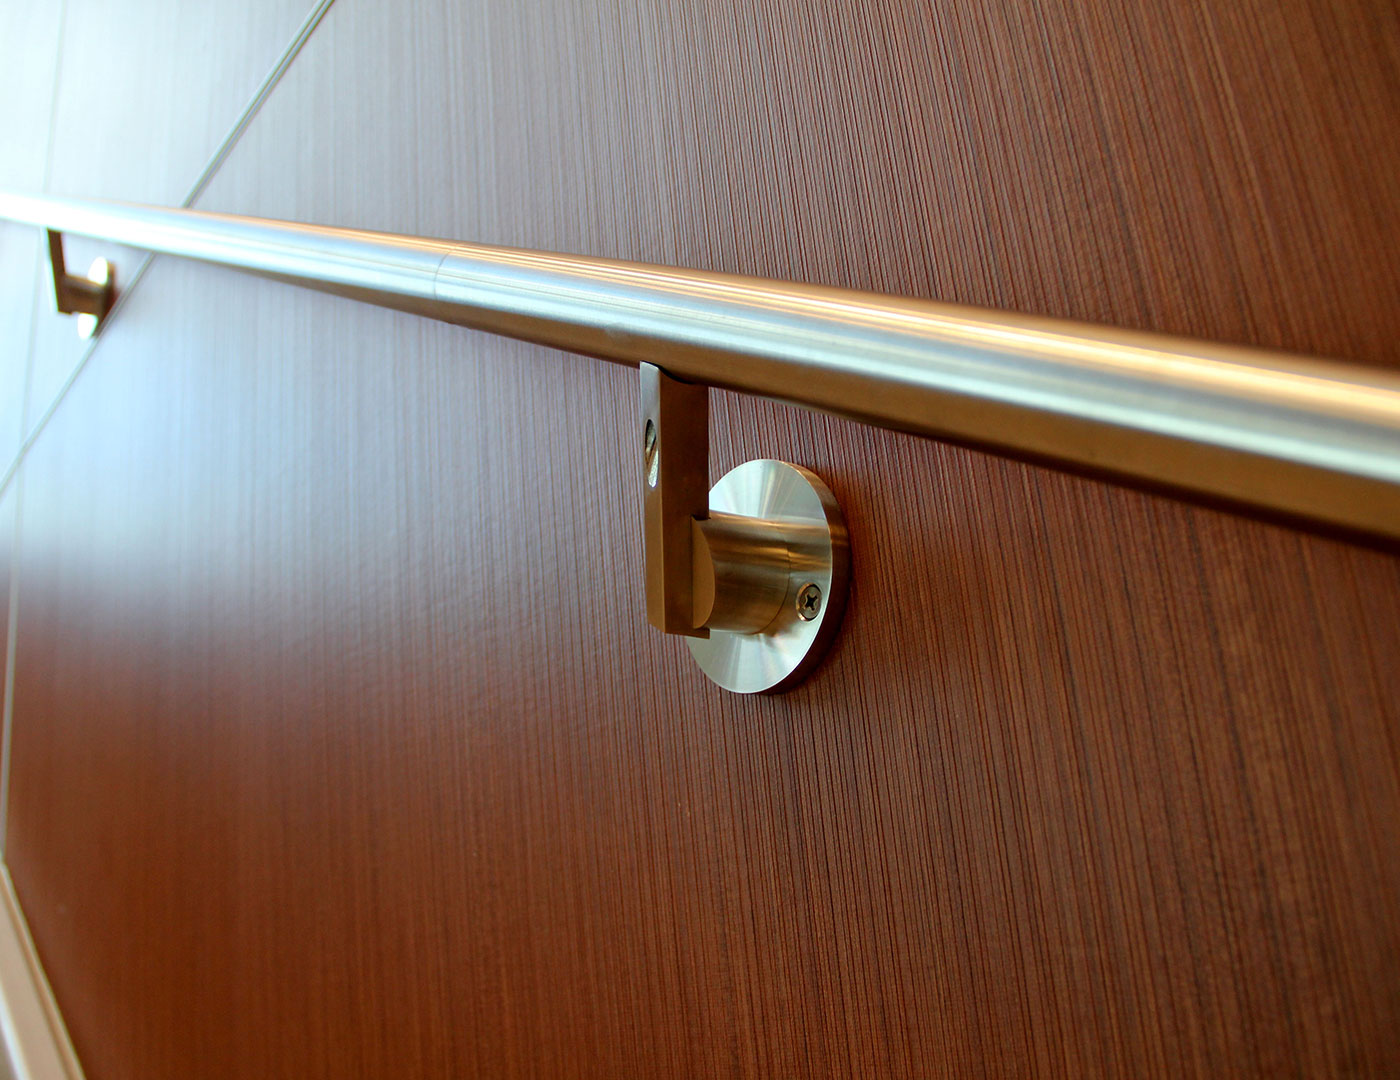 Wall mounted stainless steel handrail and components